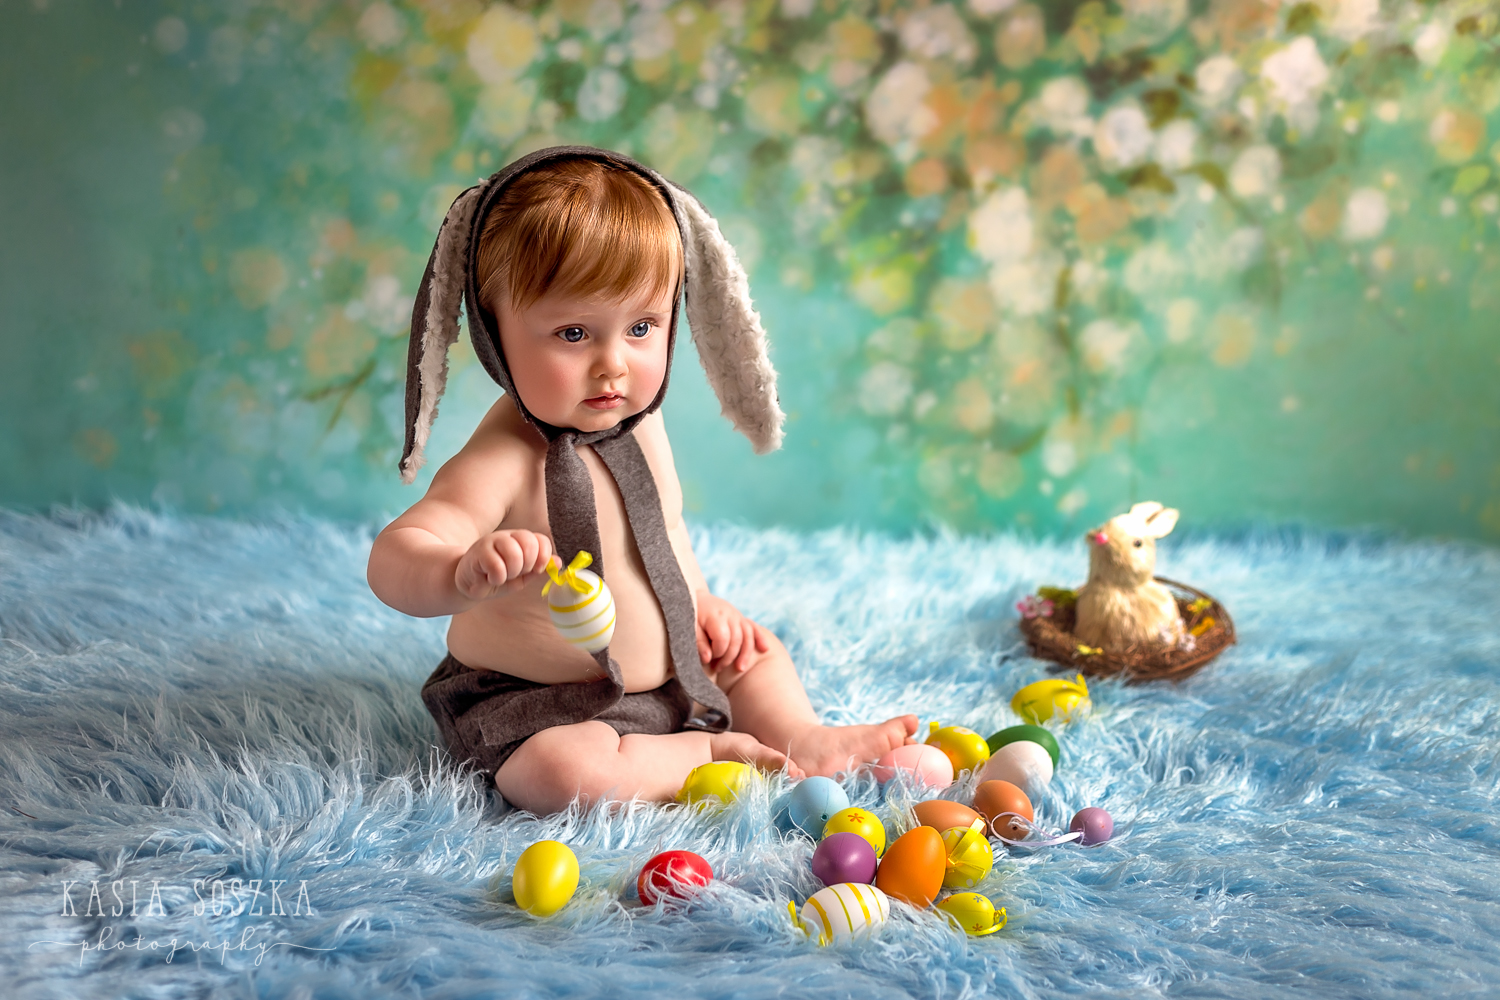 Leeds Easter baby session